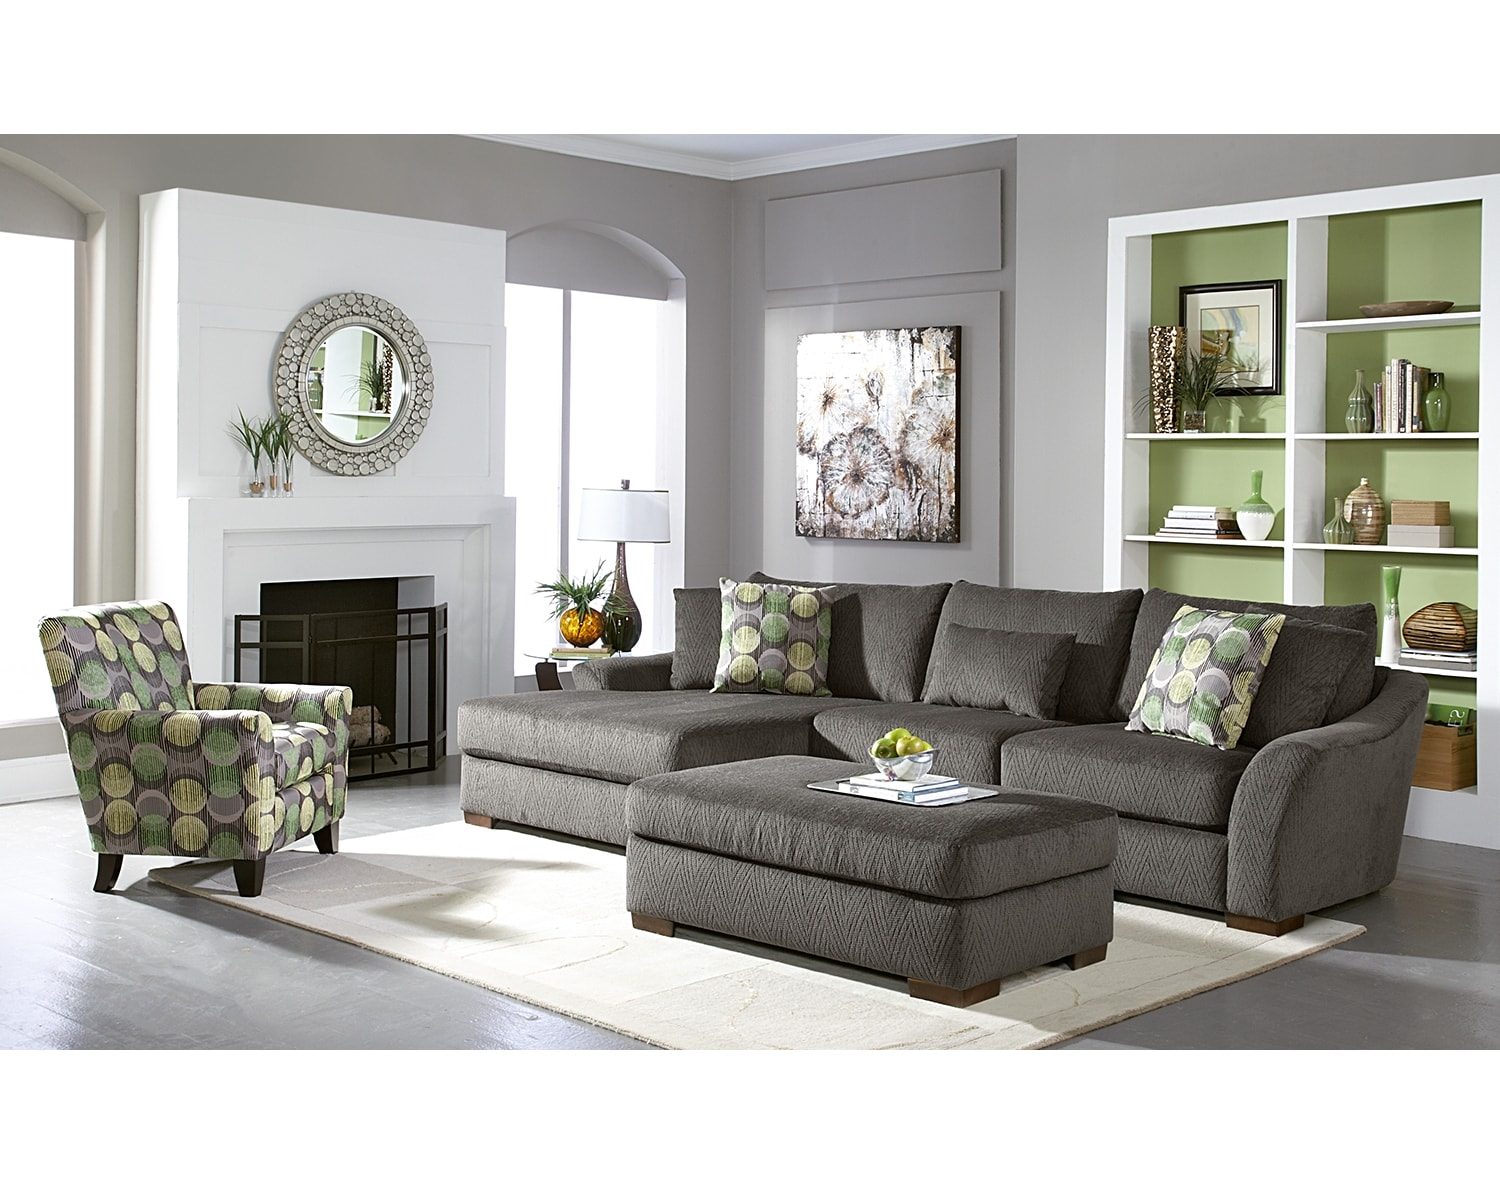 Living Room Furniture - The Orleans Gray Collection - 2 Pc. Sectional